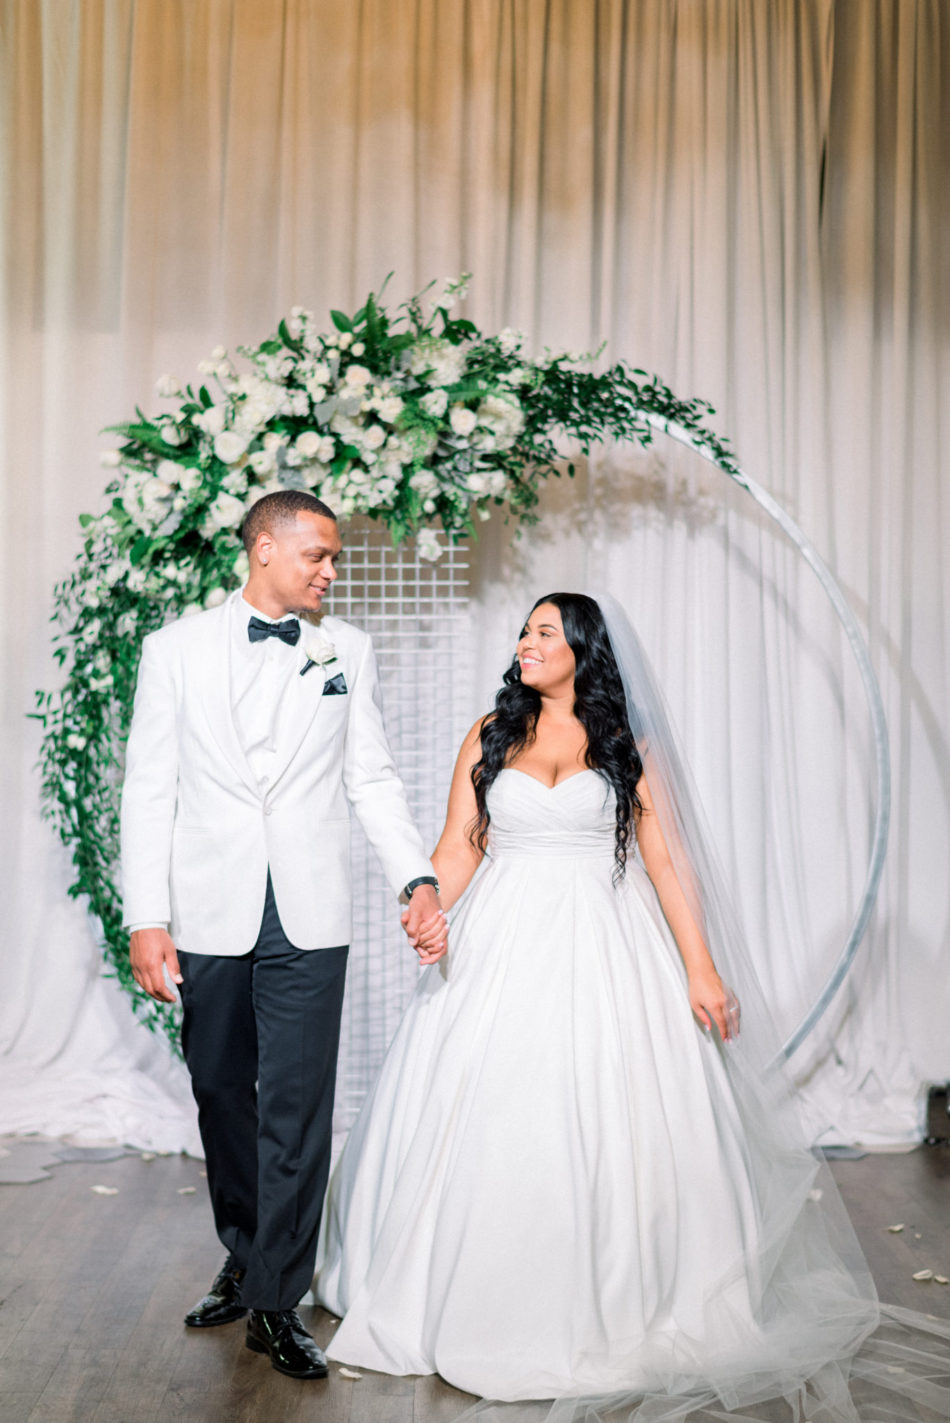 bride and groom, newlyweds, all-white wedding, floral design, florist, wedding florist, wedding flowers, orange county weddings, orange county wedding florist, orange county florist, orange county floral design, flowers by cina